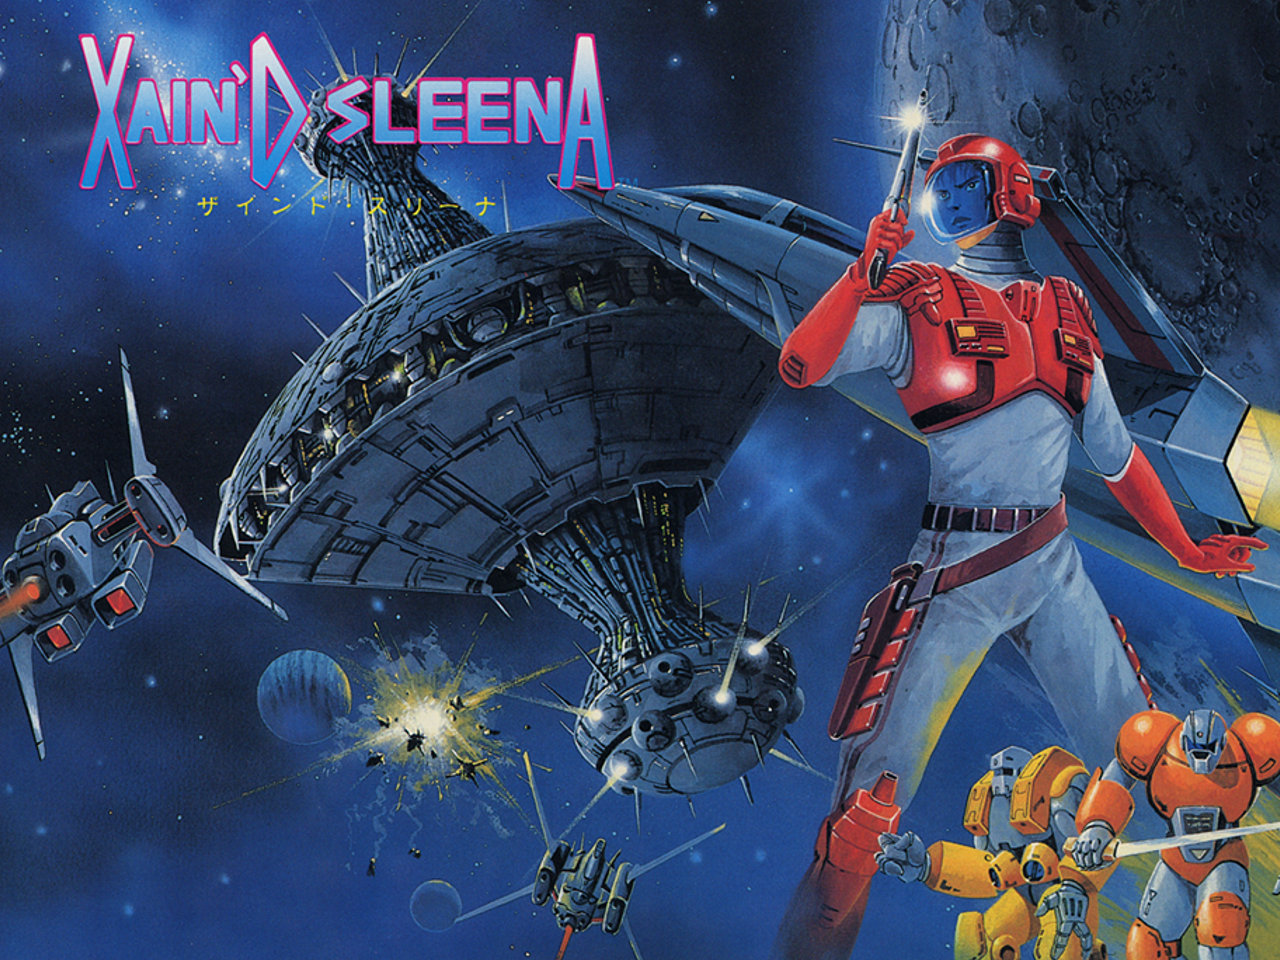 Xain'd Sleena Arcade Flyer. (Bild: Technos Japan)